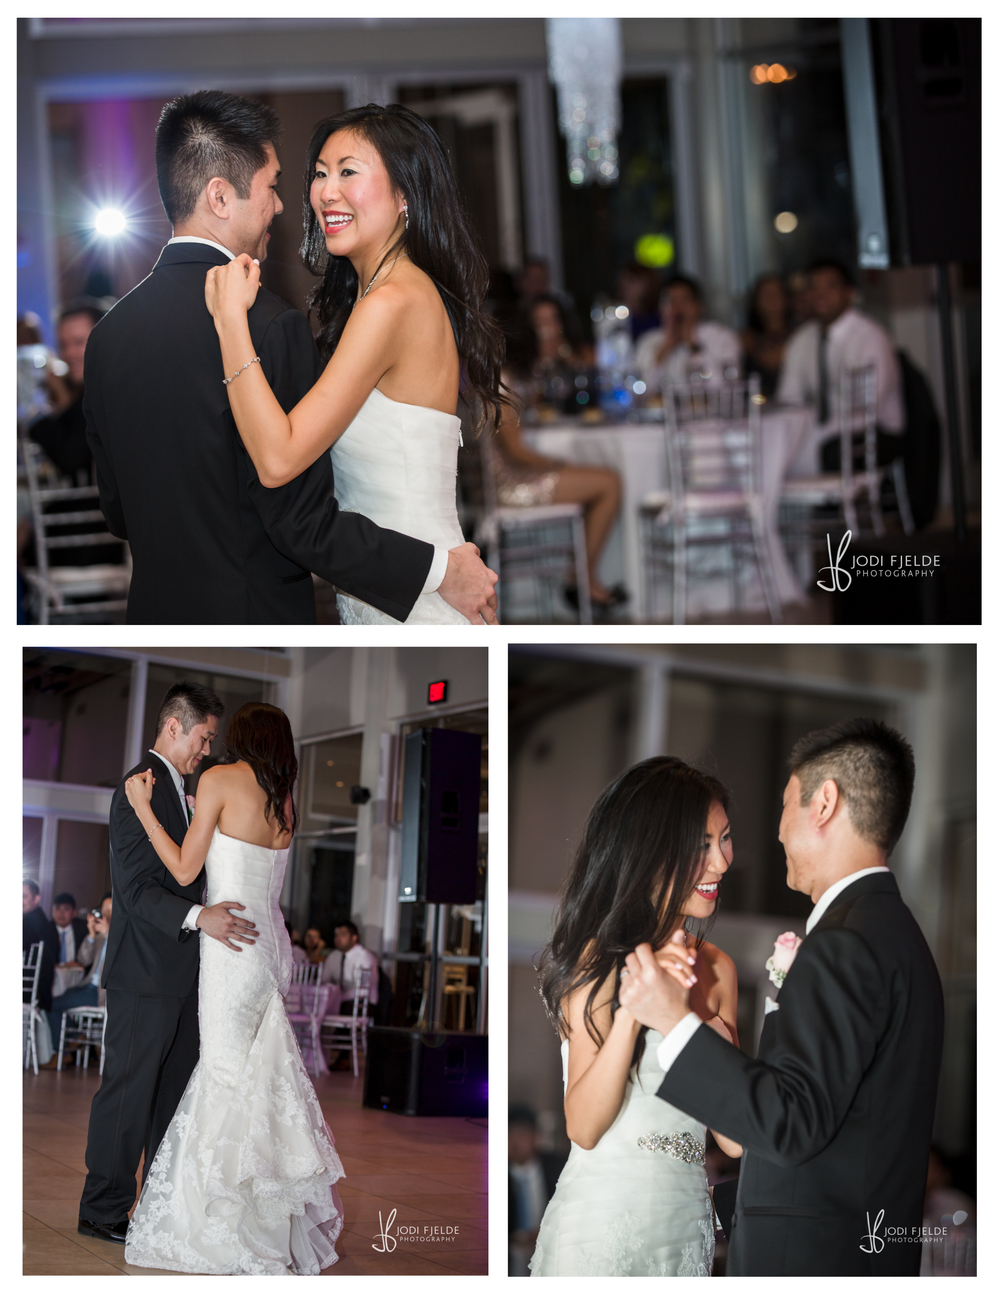 Lake_Pavilion_Wedding_West_Palm_Beach_Jodi_Fjelde_Photography_Betty_Alex_Sociaety_Of_Four _Arts_23.jpg